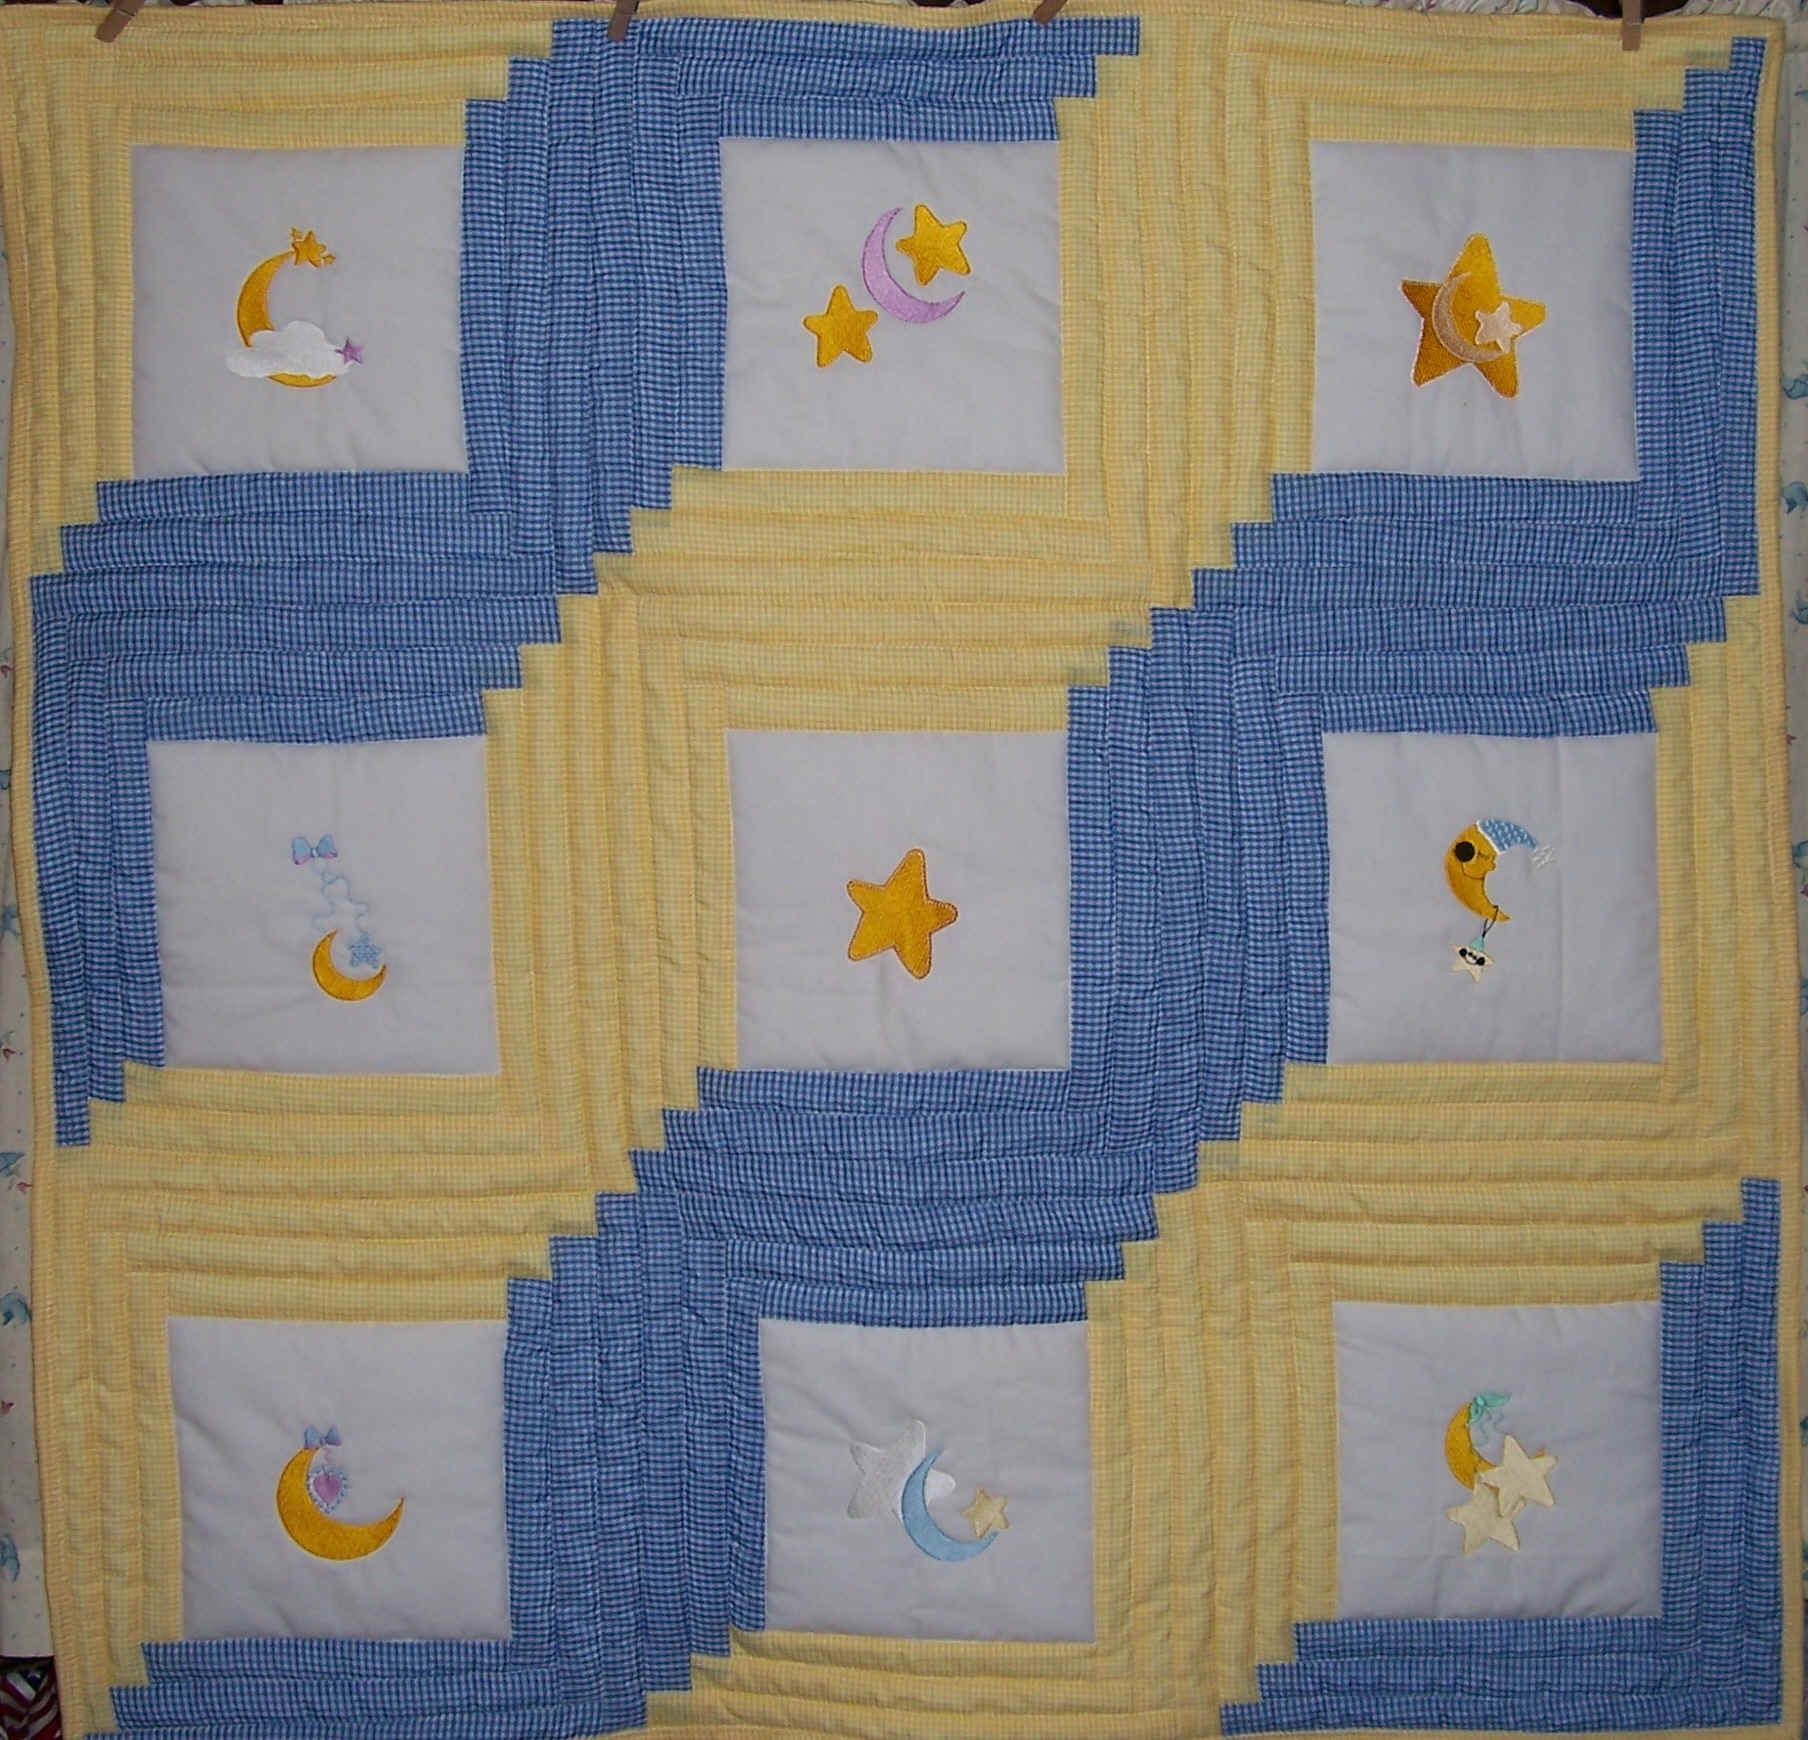 Moon & Stars Quilt - http://www.baby-quilts-etc.com/images ... : quilts etc - Adamdwight.com